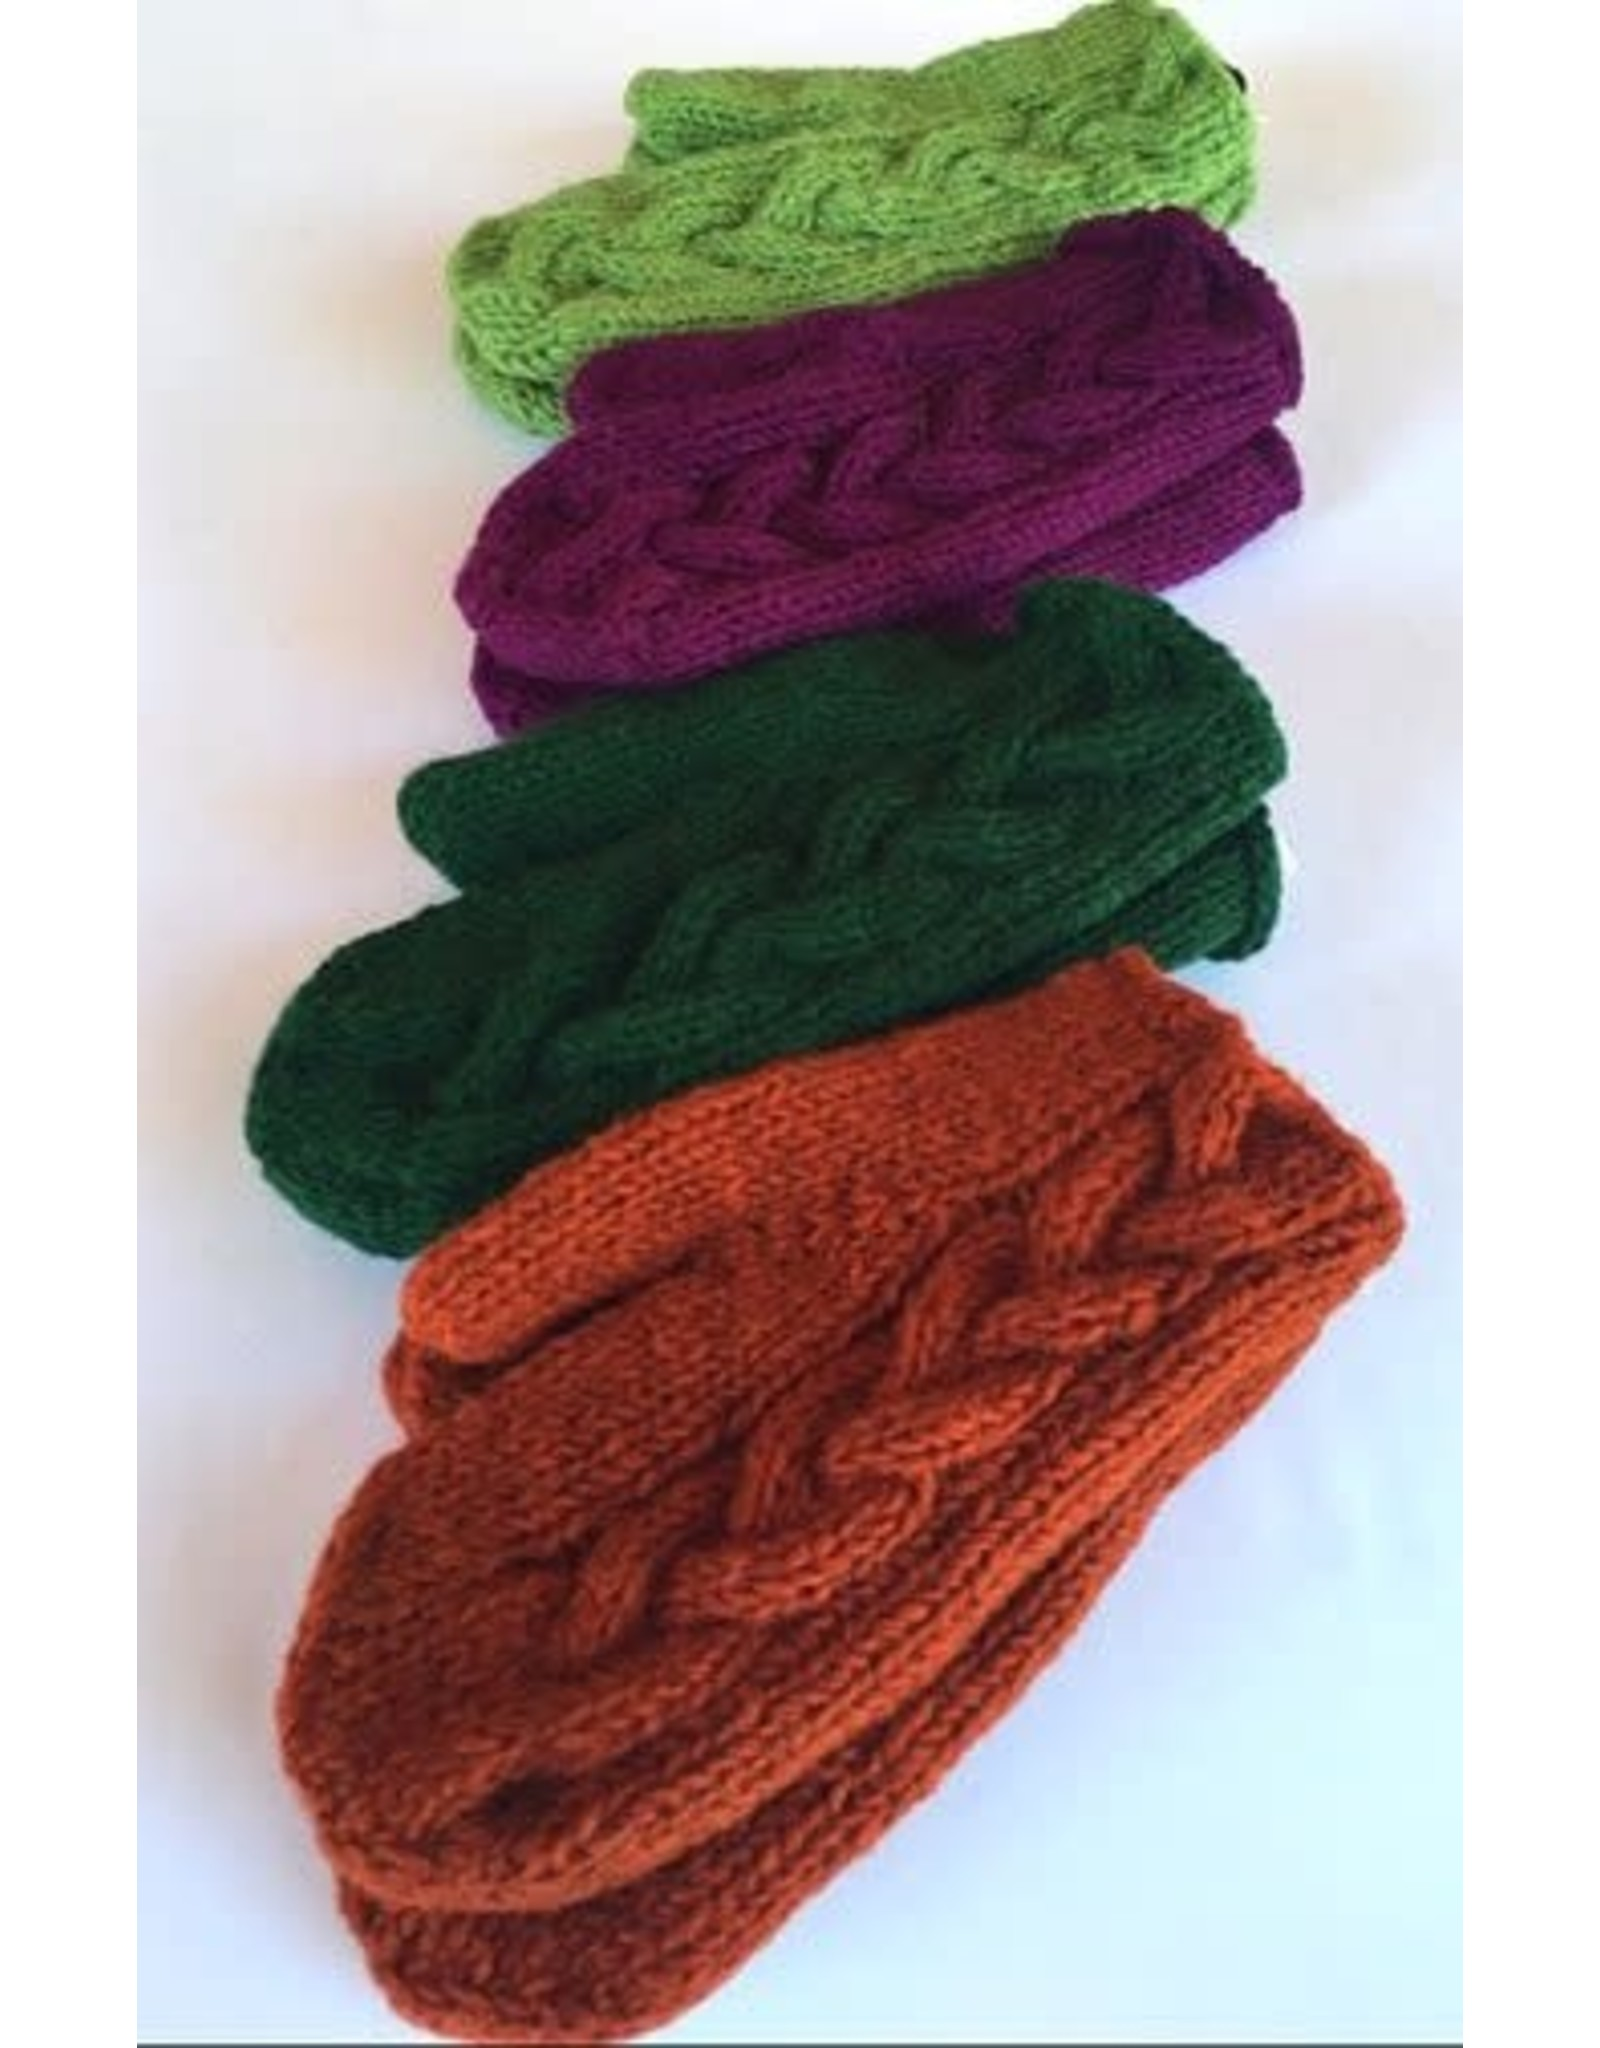 Ganesh Himal Cable knit wool mitten, lined